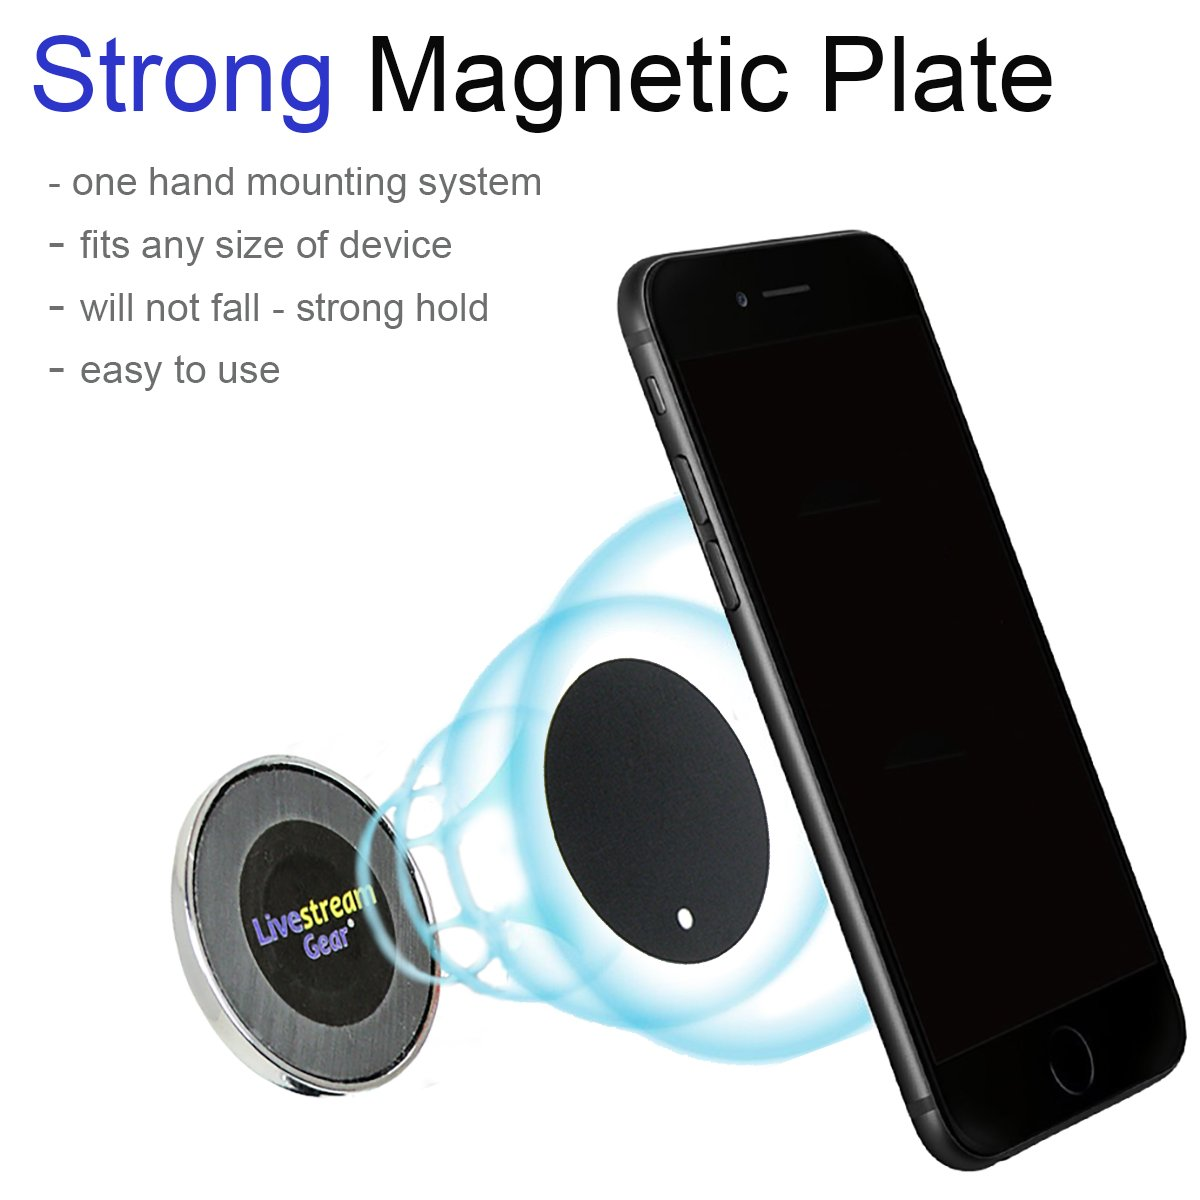 Universal Magnetic Phone Mount and Suction Cup Mount for Glass//Windshield in Car//Truck Cellfy Inc Easily Attach a Phone to Glass Surfaces via Magnetic Mount and Metallic Plates Livestream Gear Strong Hold 603